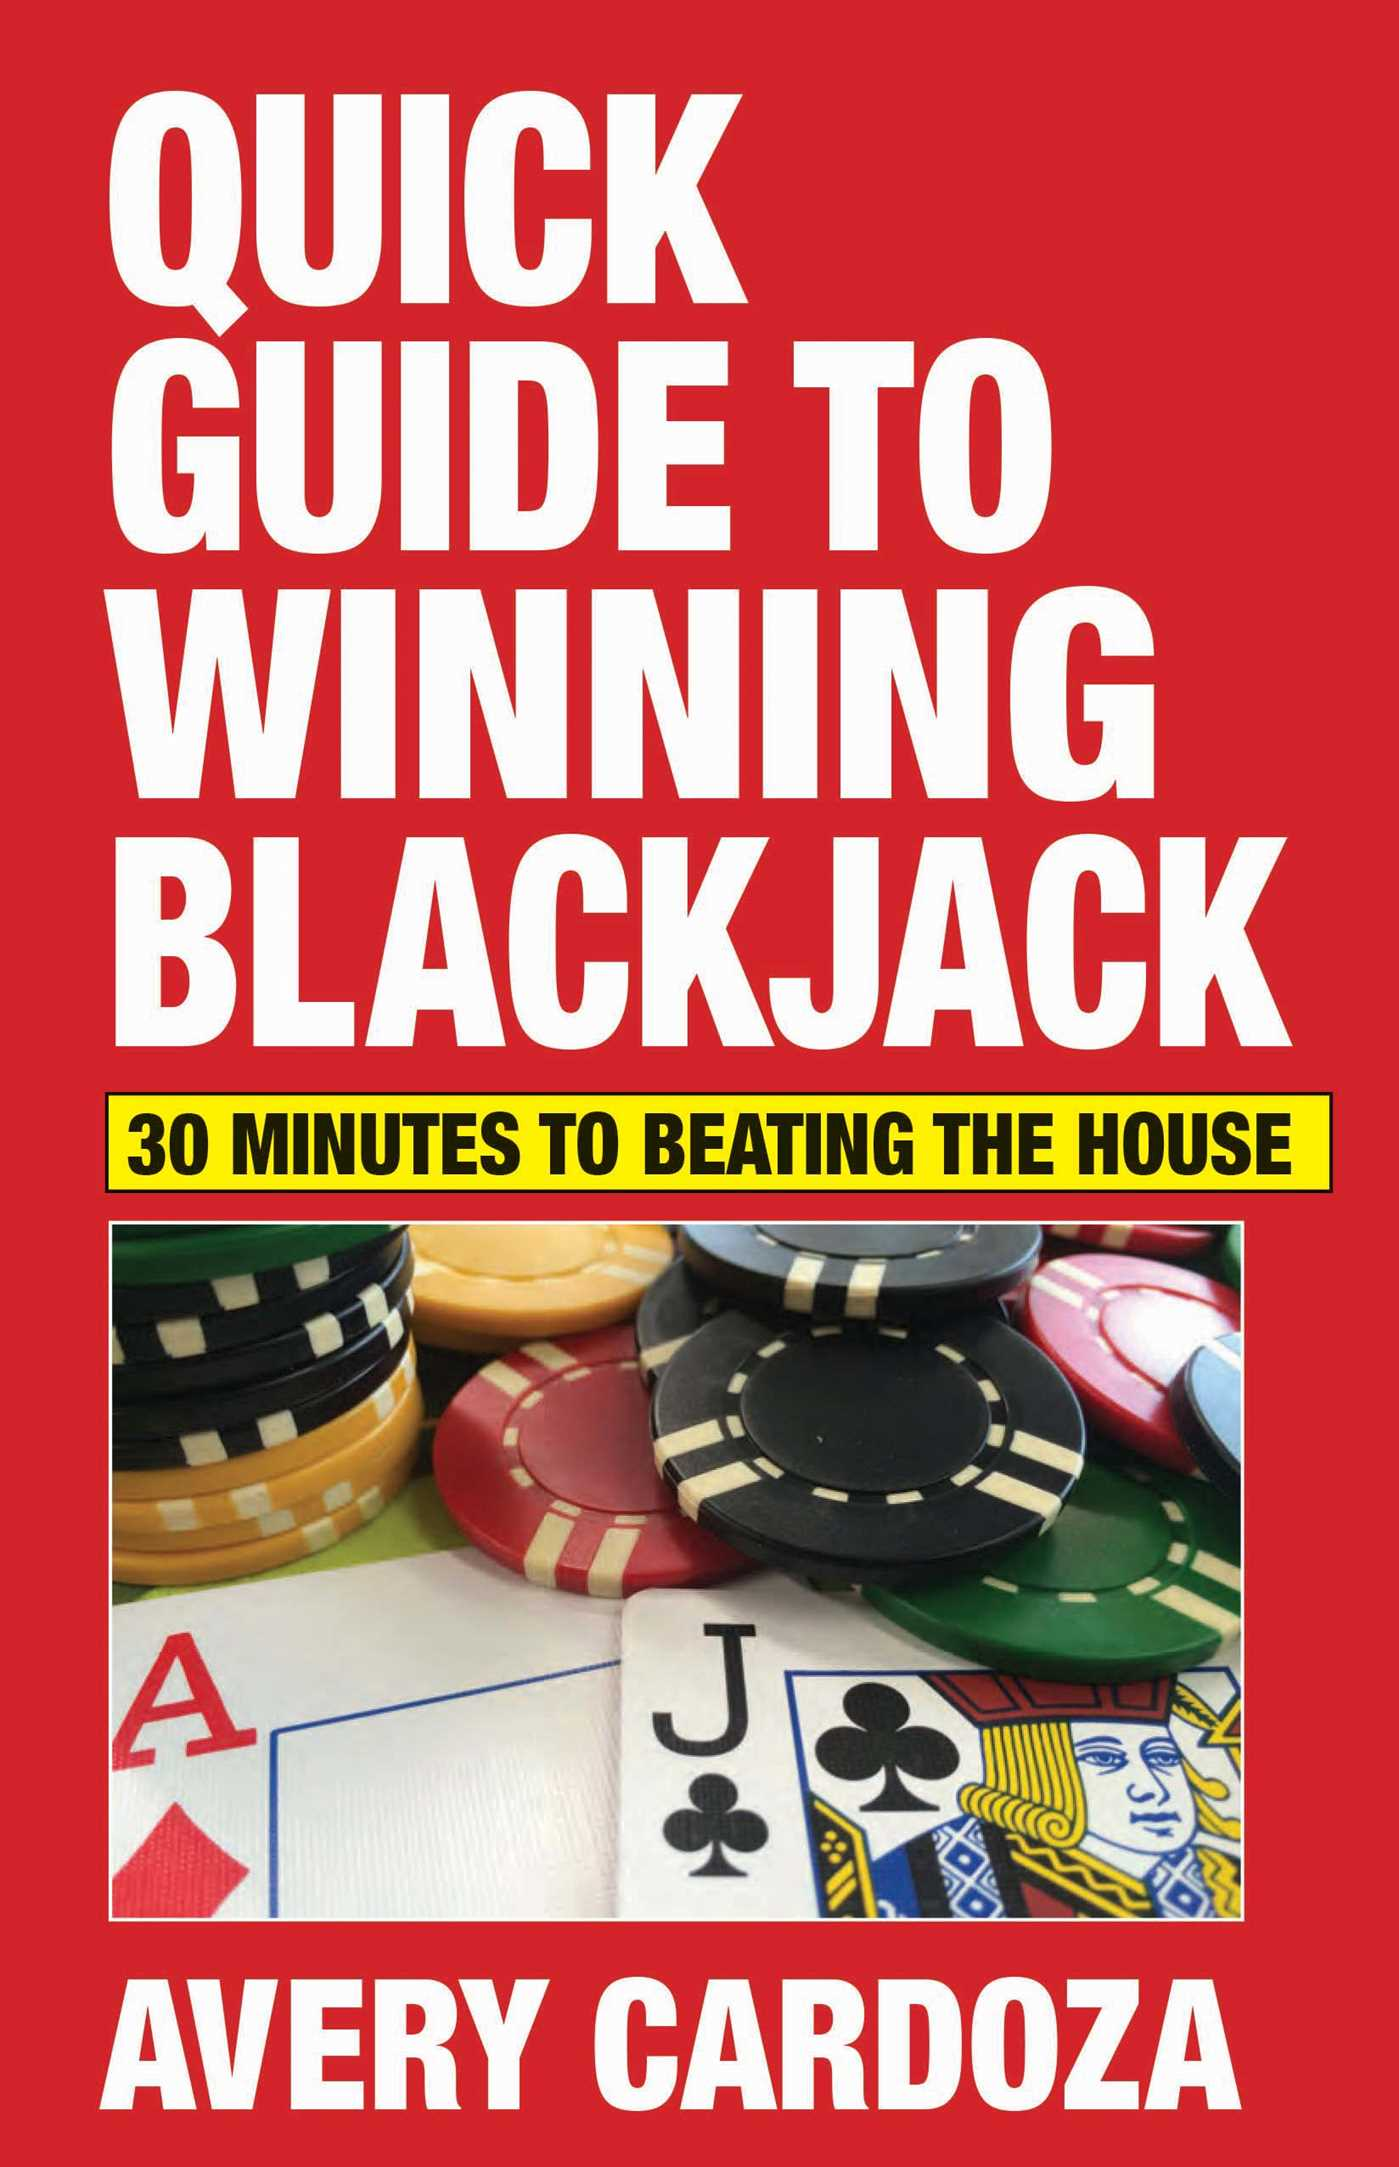 Quick guide to winning blackjack by avery cardoza poker chip manufacturers india